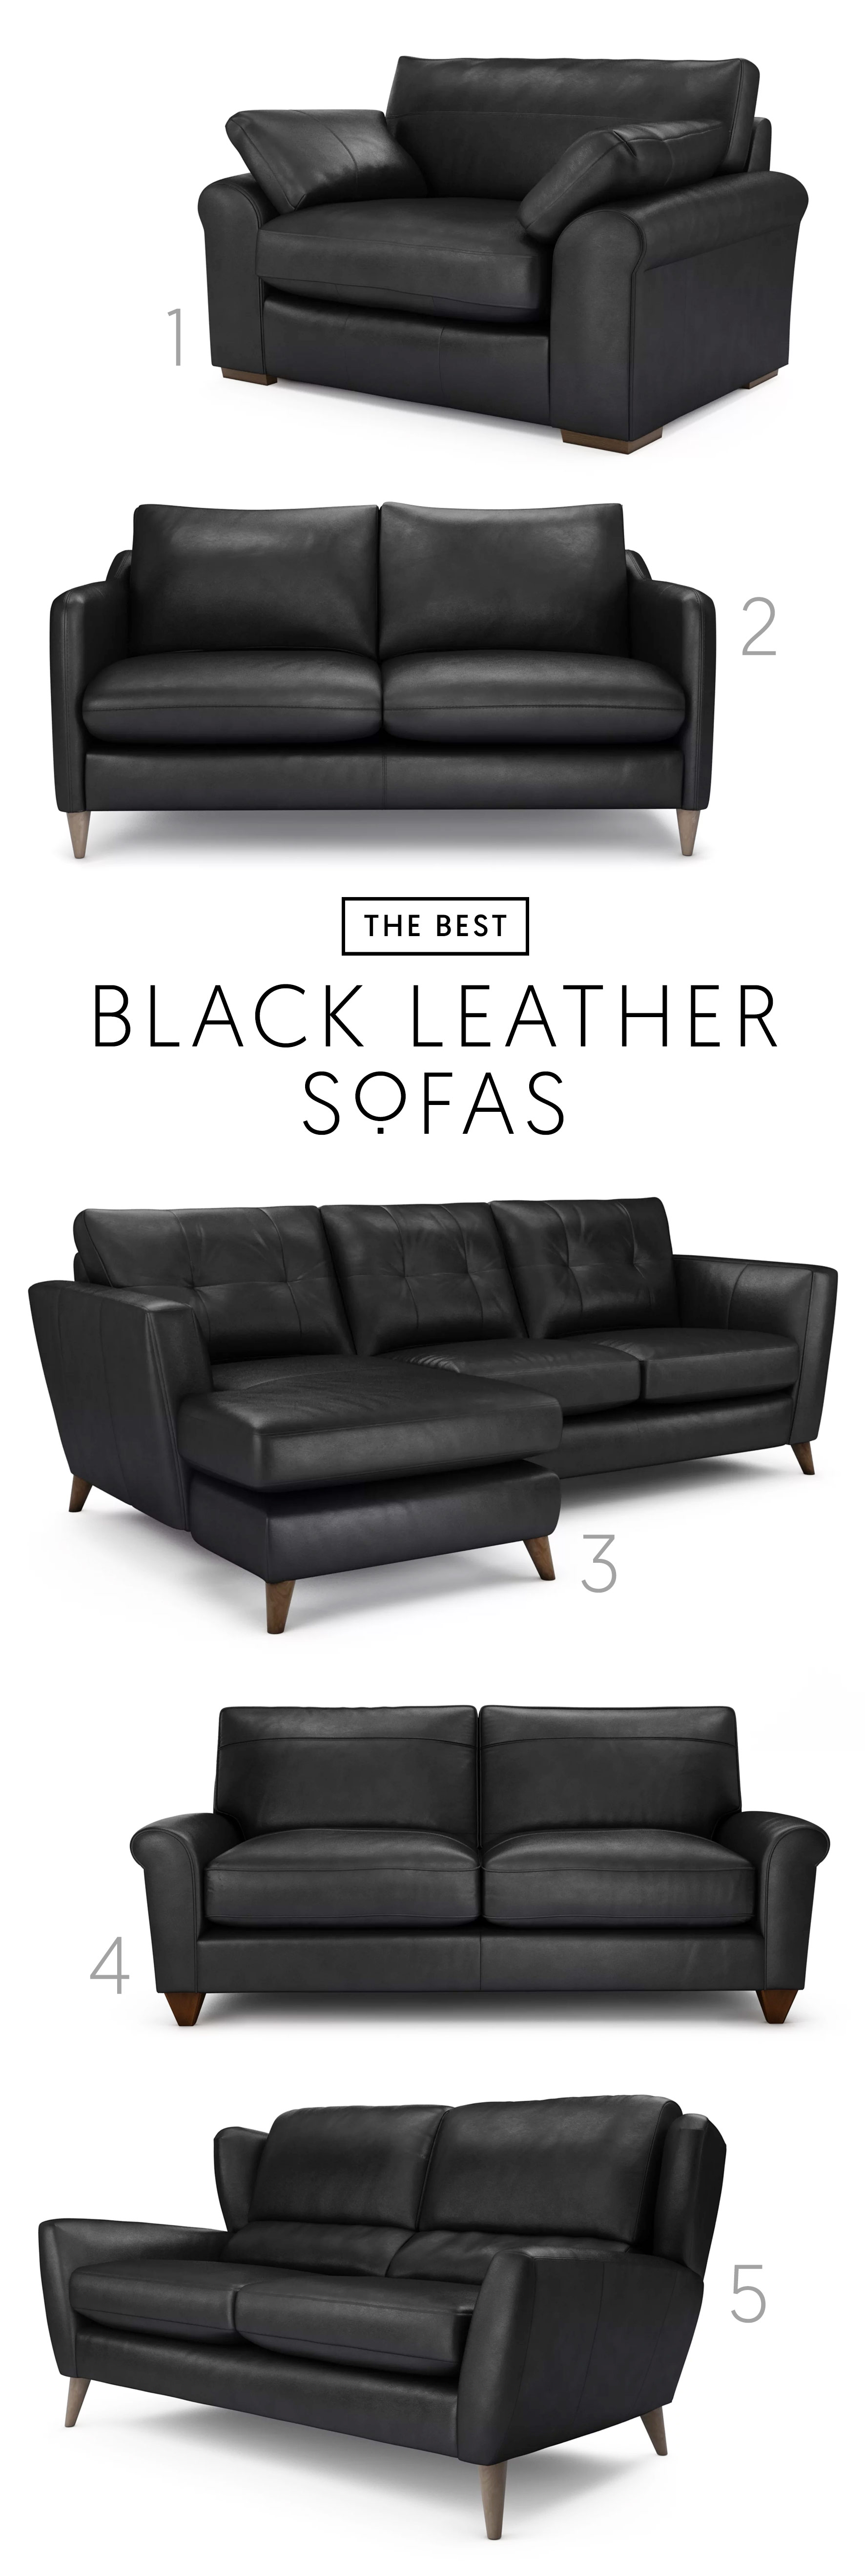 set black sofa full ikea of ashley furniture loveseat couch size and sectional discontinued leather